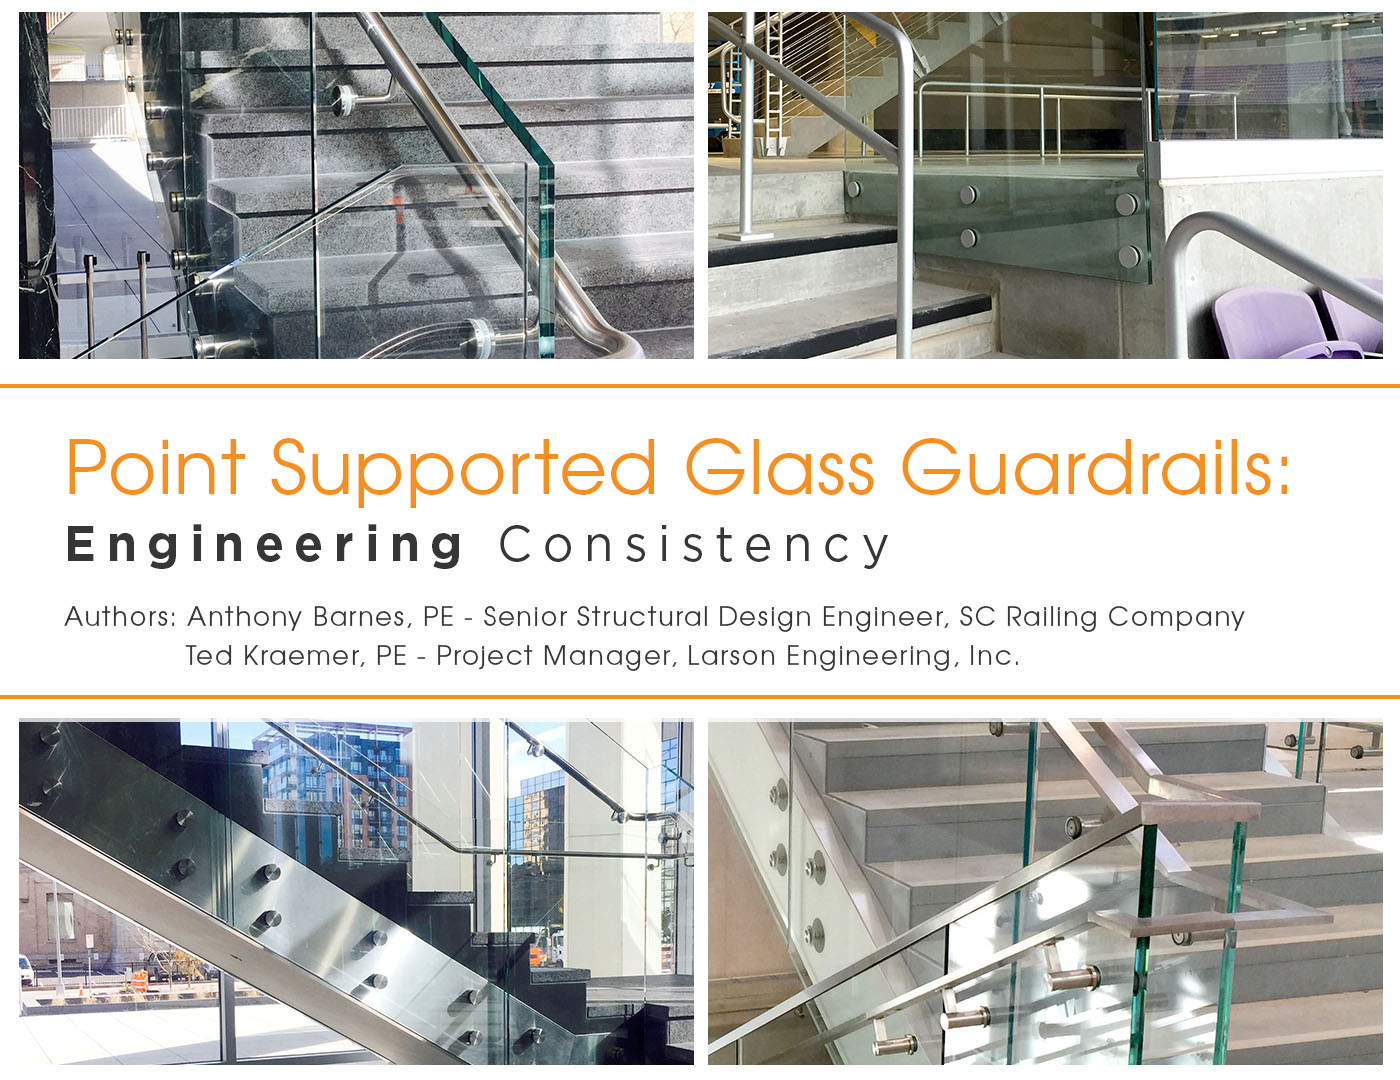 Point Supported Glass Guardrails Engineering Consistency